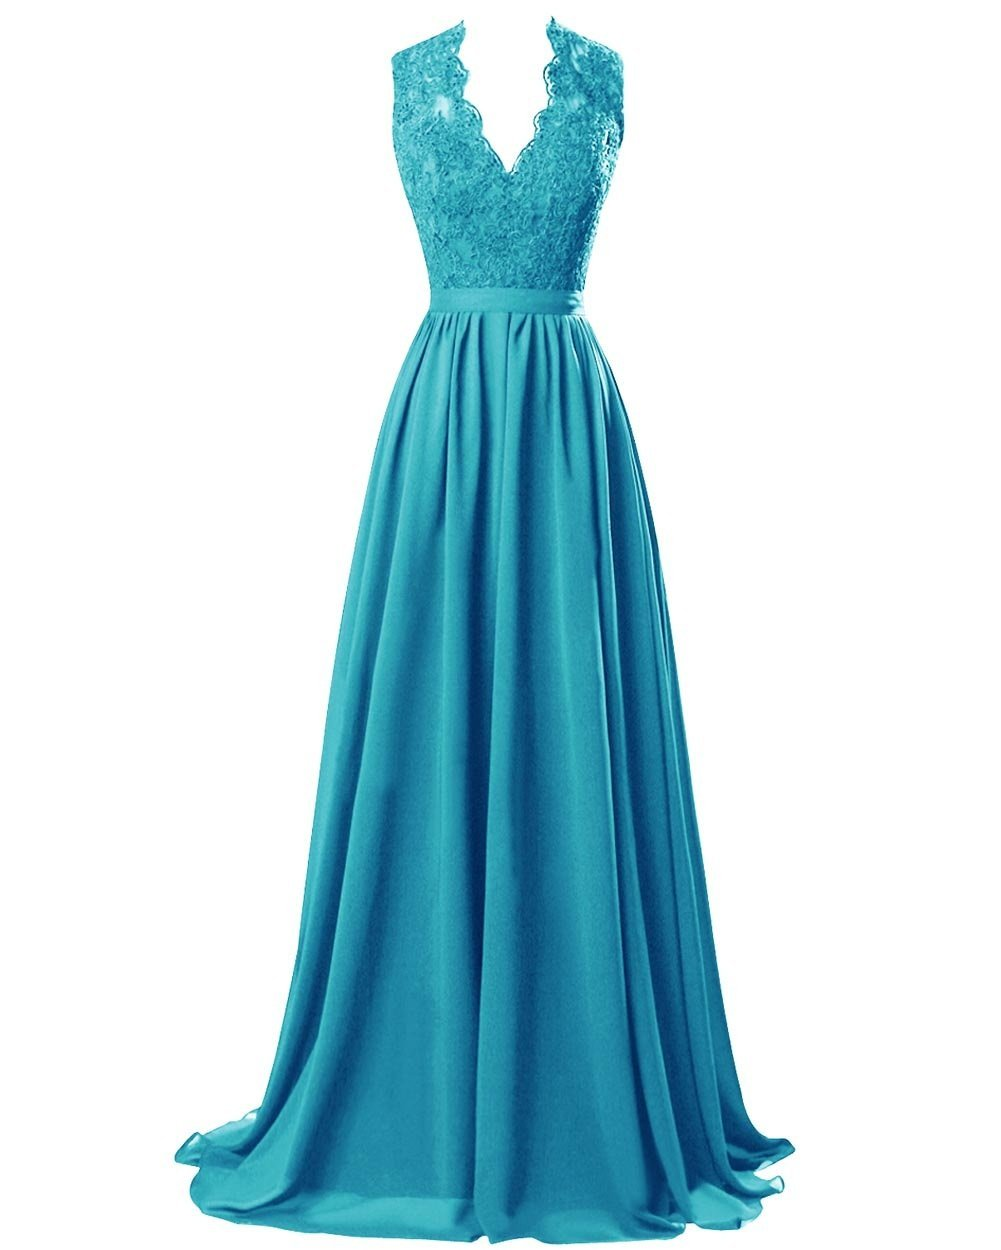 Turquoise lace chiffon long bridesmaid wedding prom evening ballgown dress cut out back Loulous Bridal Boutique Ltd UK